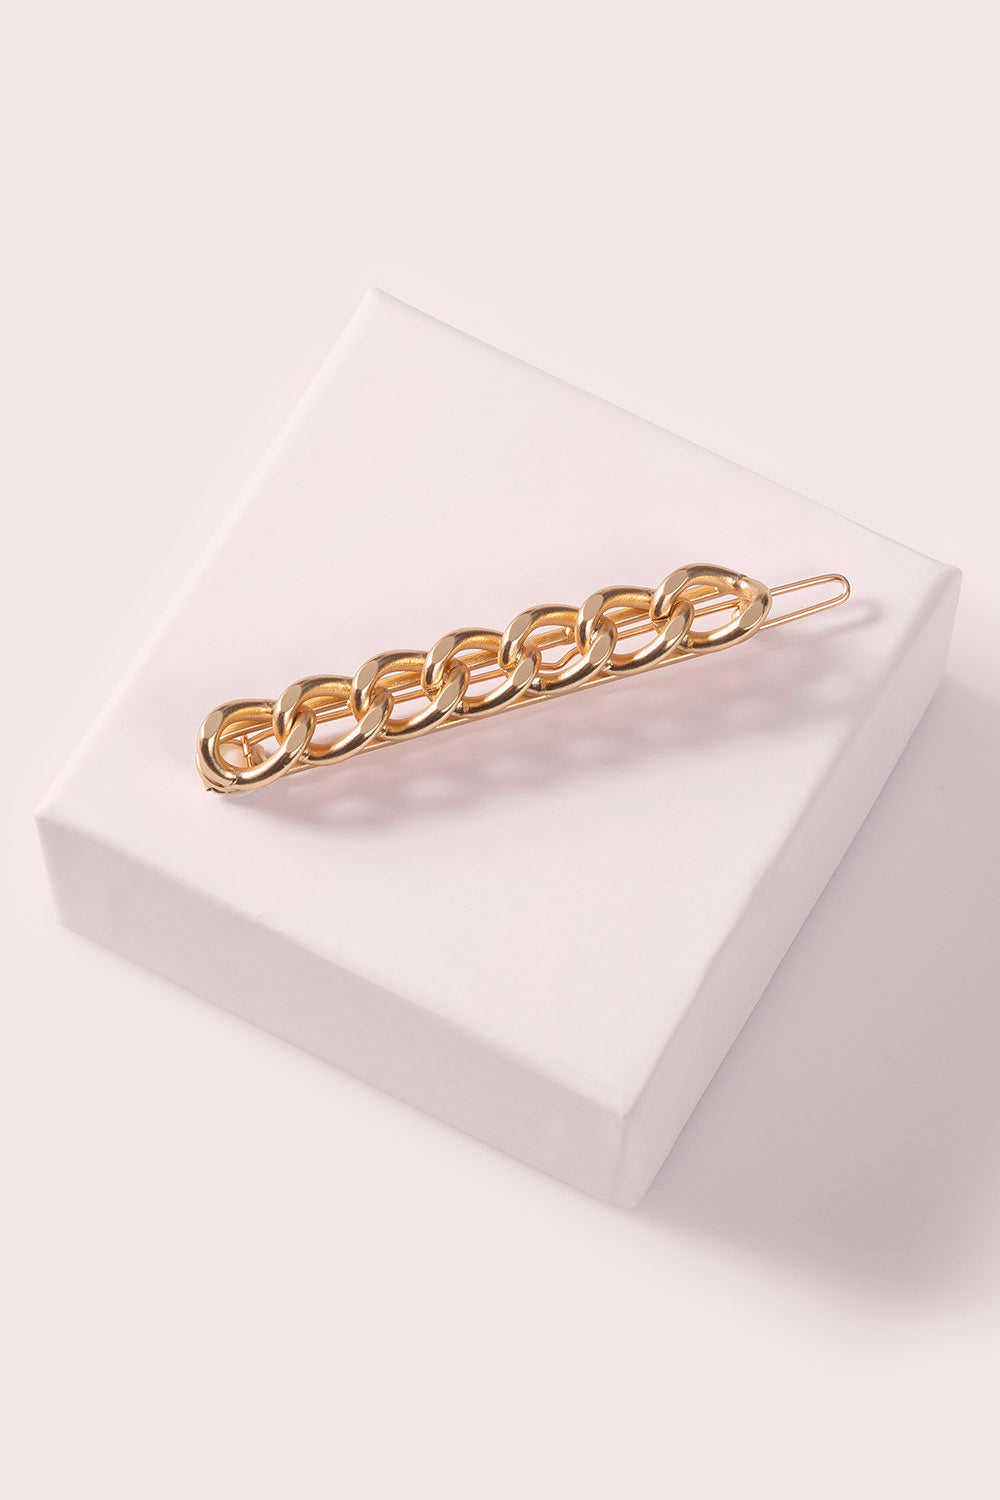 The Hair Edit Soft Gold Chain Link Cable Barrette Hair Clip Accessory